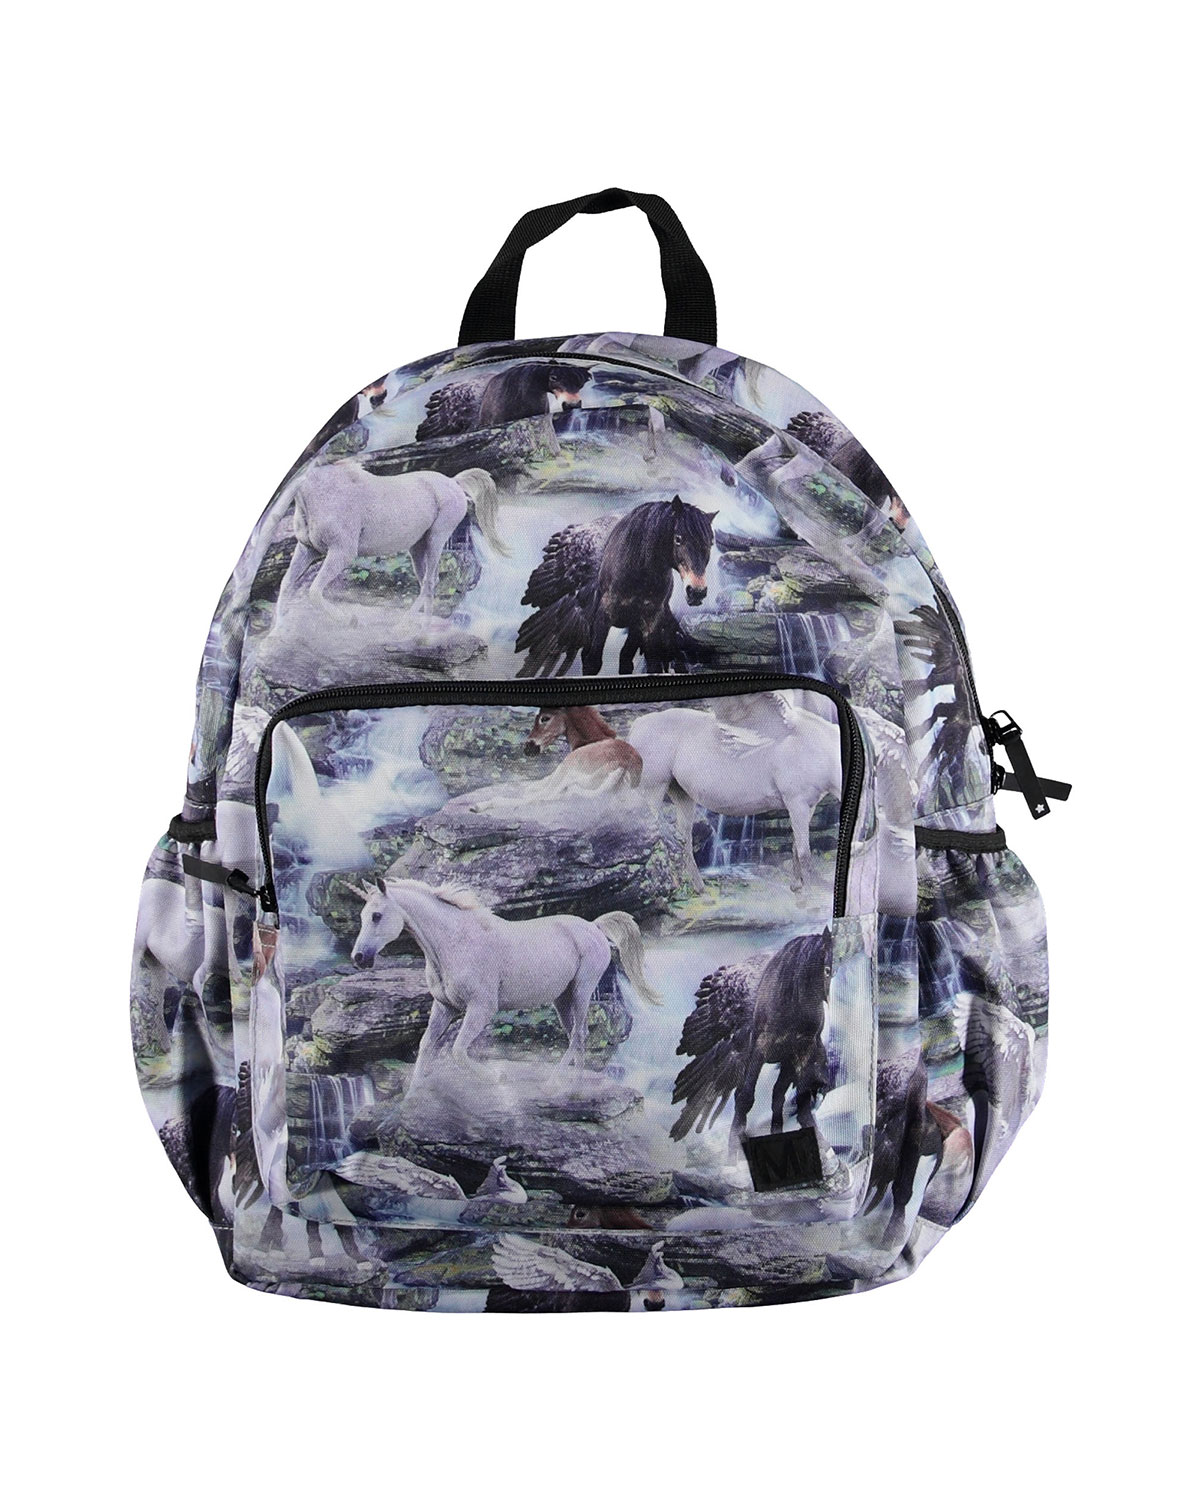 Molo KID'S HORSE PRINT BACKPACK